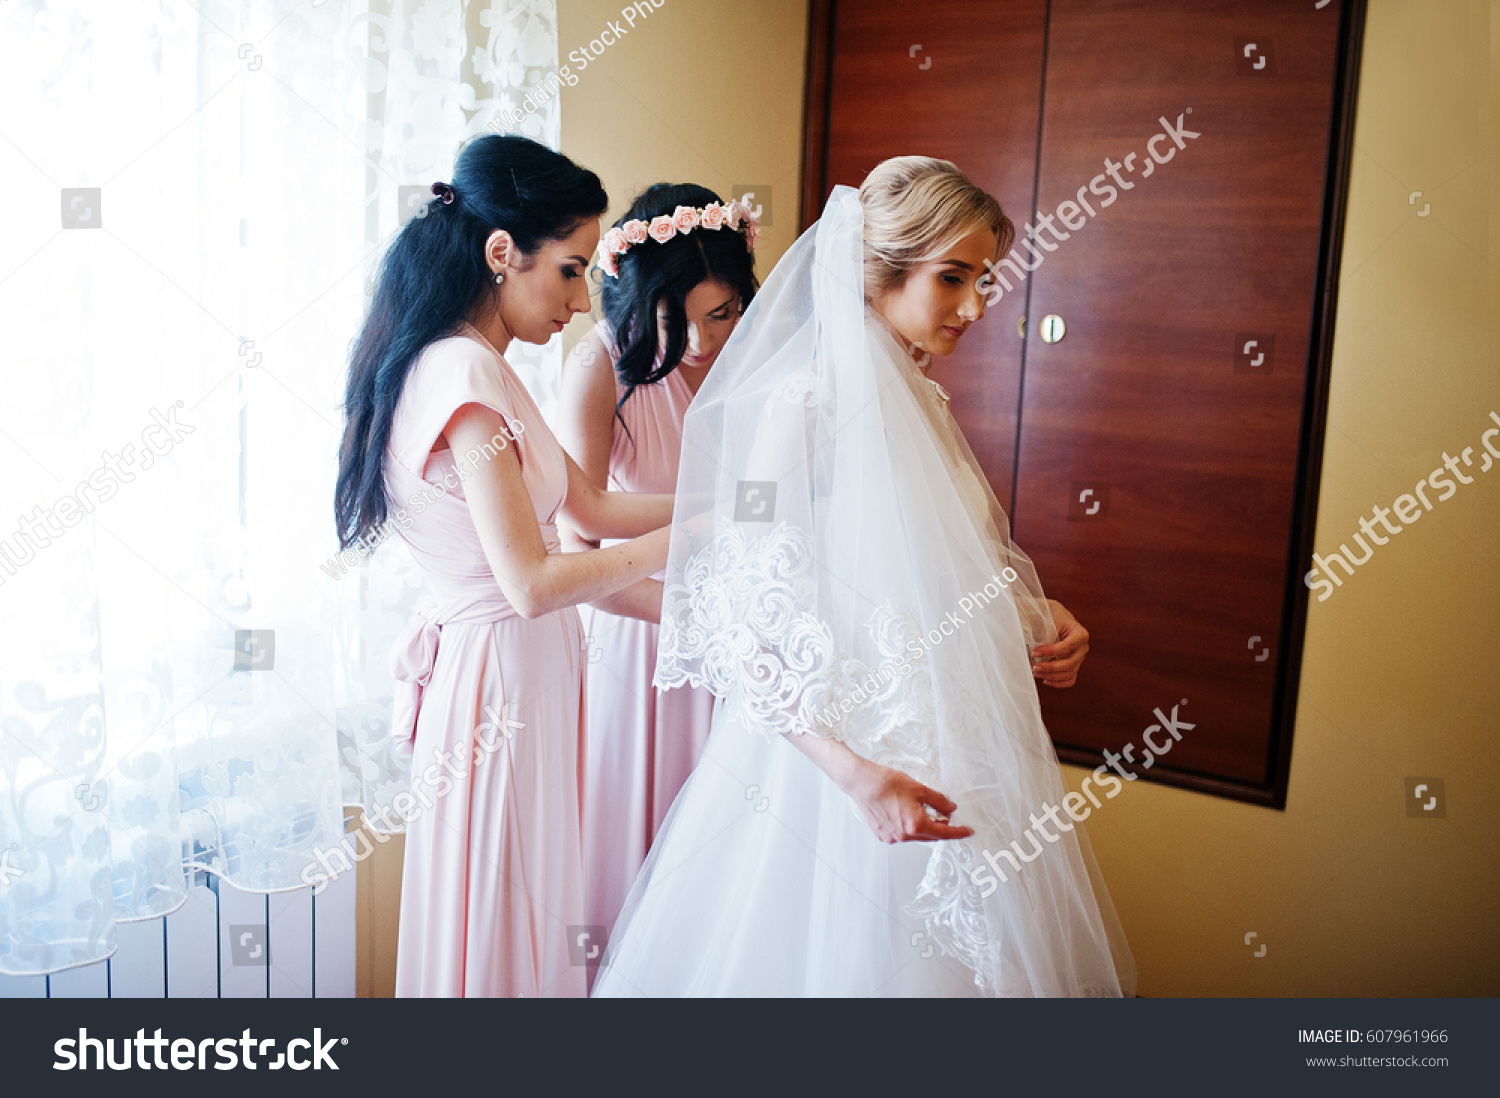 10c573d4d373 Fashionable bridesmaids on pink dresses helped wear bow on back of wedding  dress bride. Morning